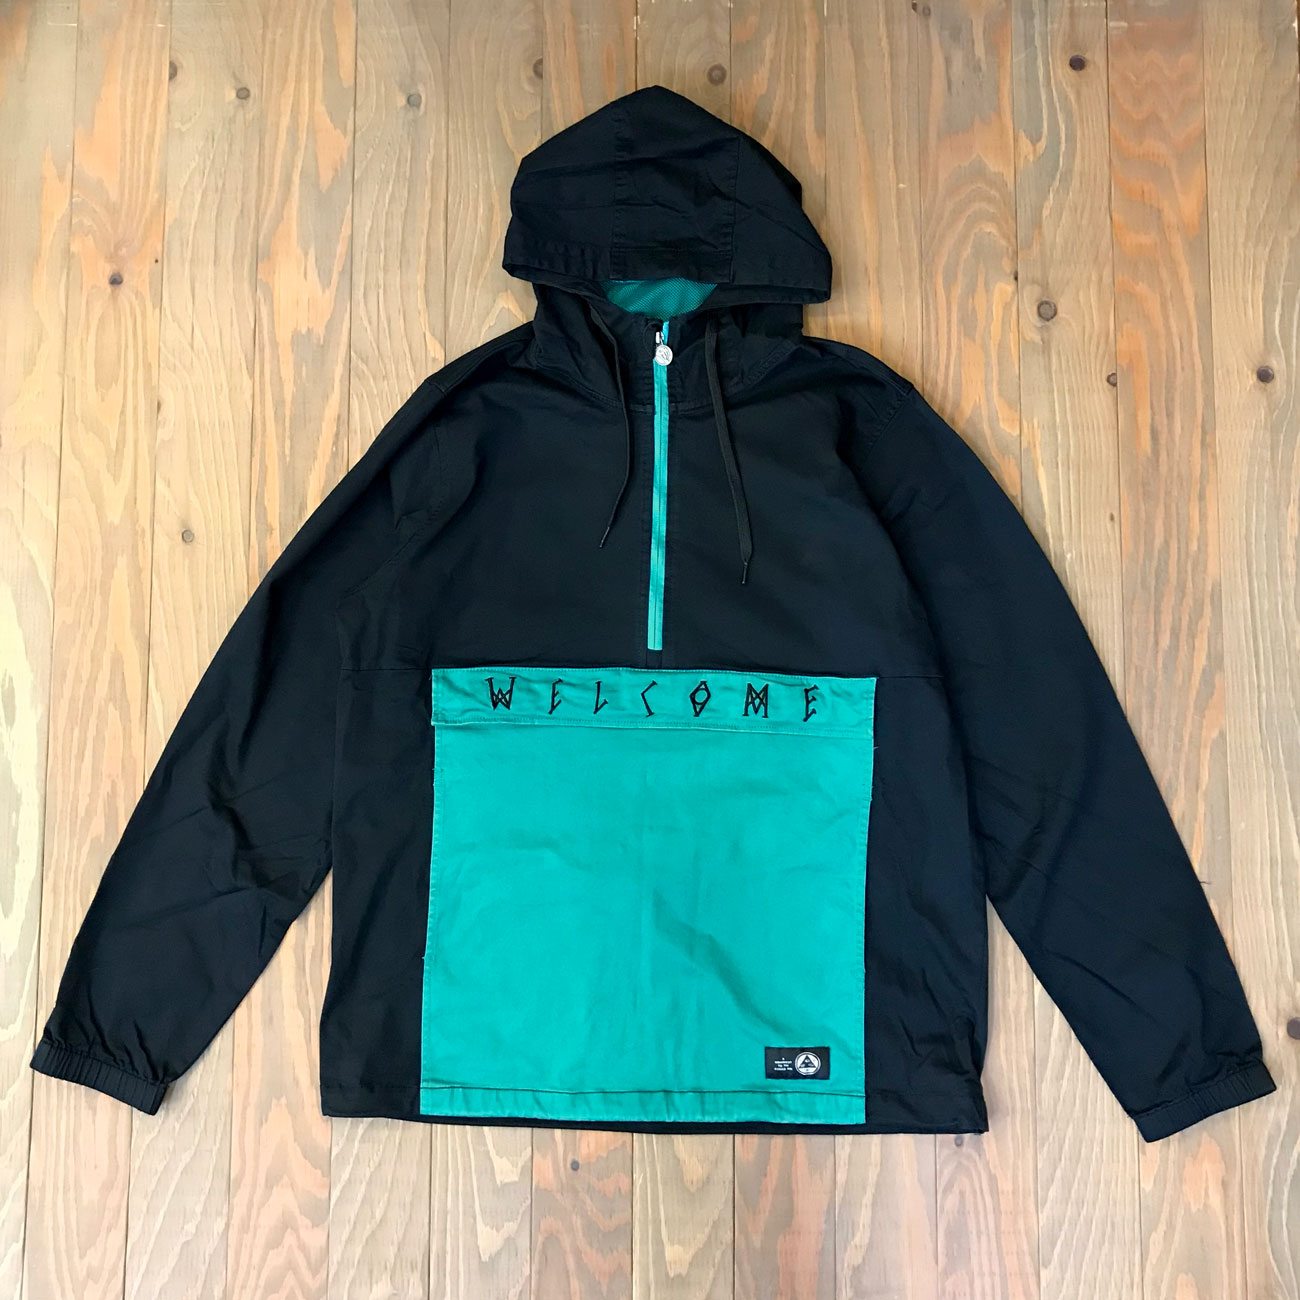 WELCOME SCRAWL TWILL ANORAK JKT BLACK/TEAL